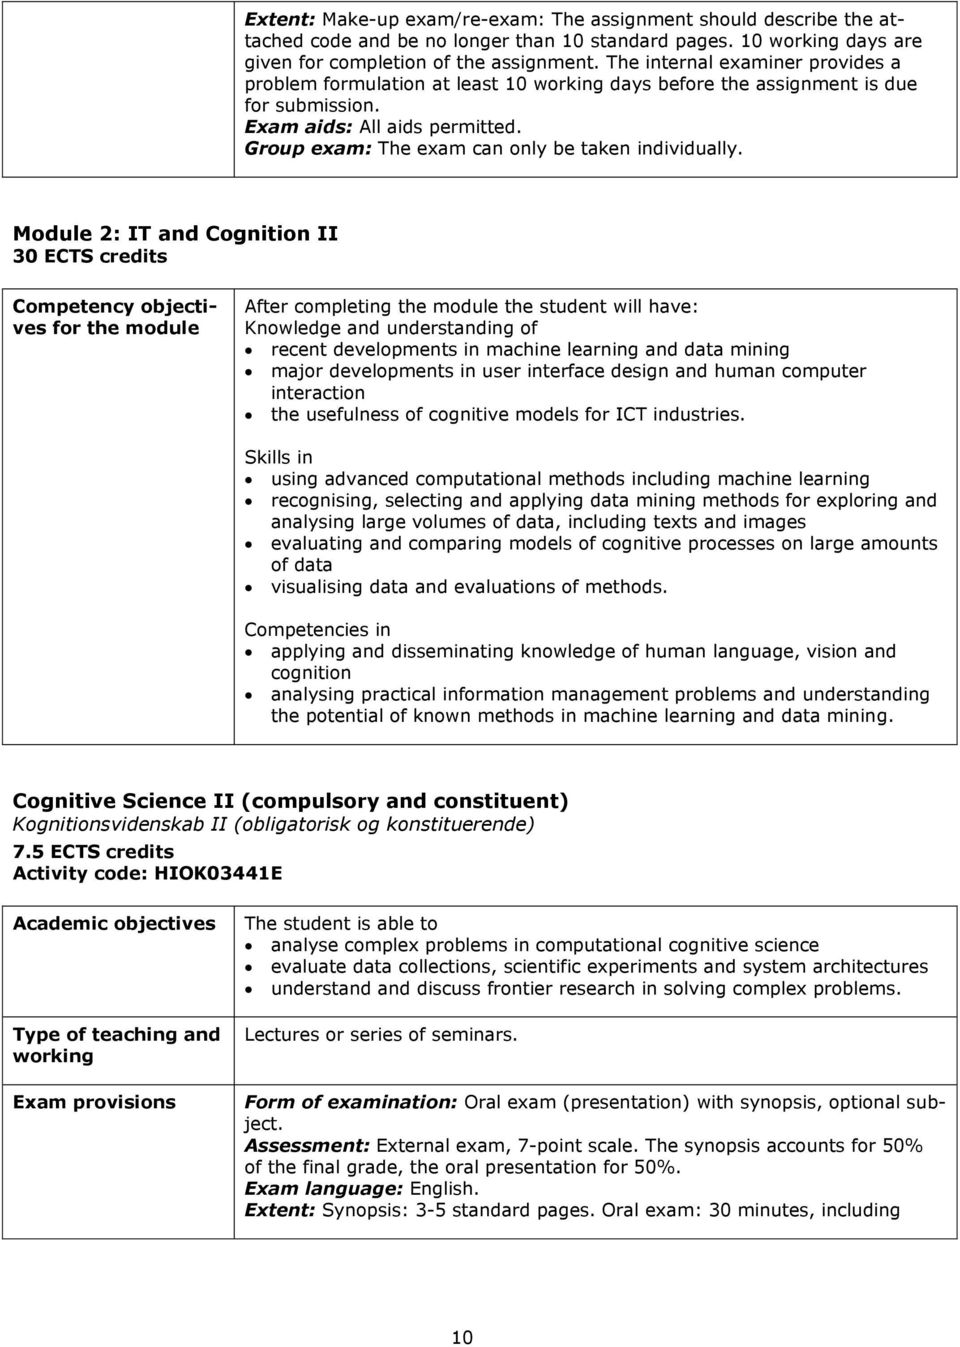 Module 2: IT and Cognition II 30 ECTS credits Competency objectives for the module After completing the module the student will have: Knowledge and understanding of recent developments in machine